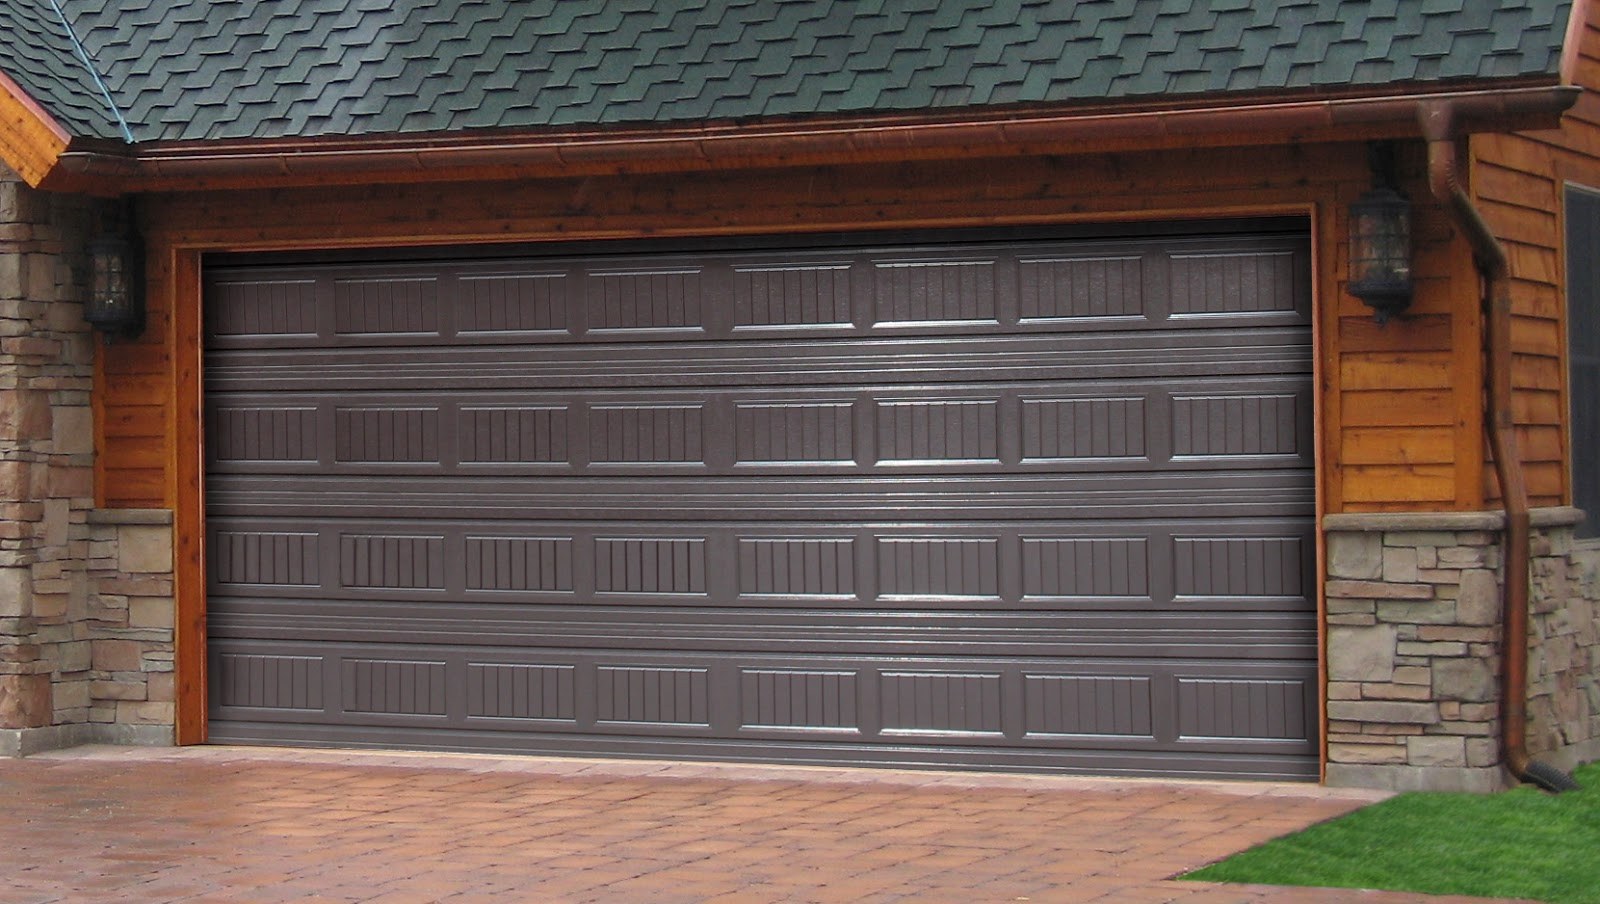 Maui Garage Doors Inc